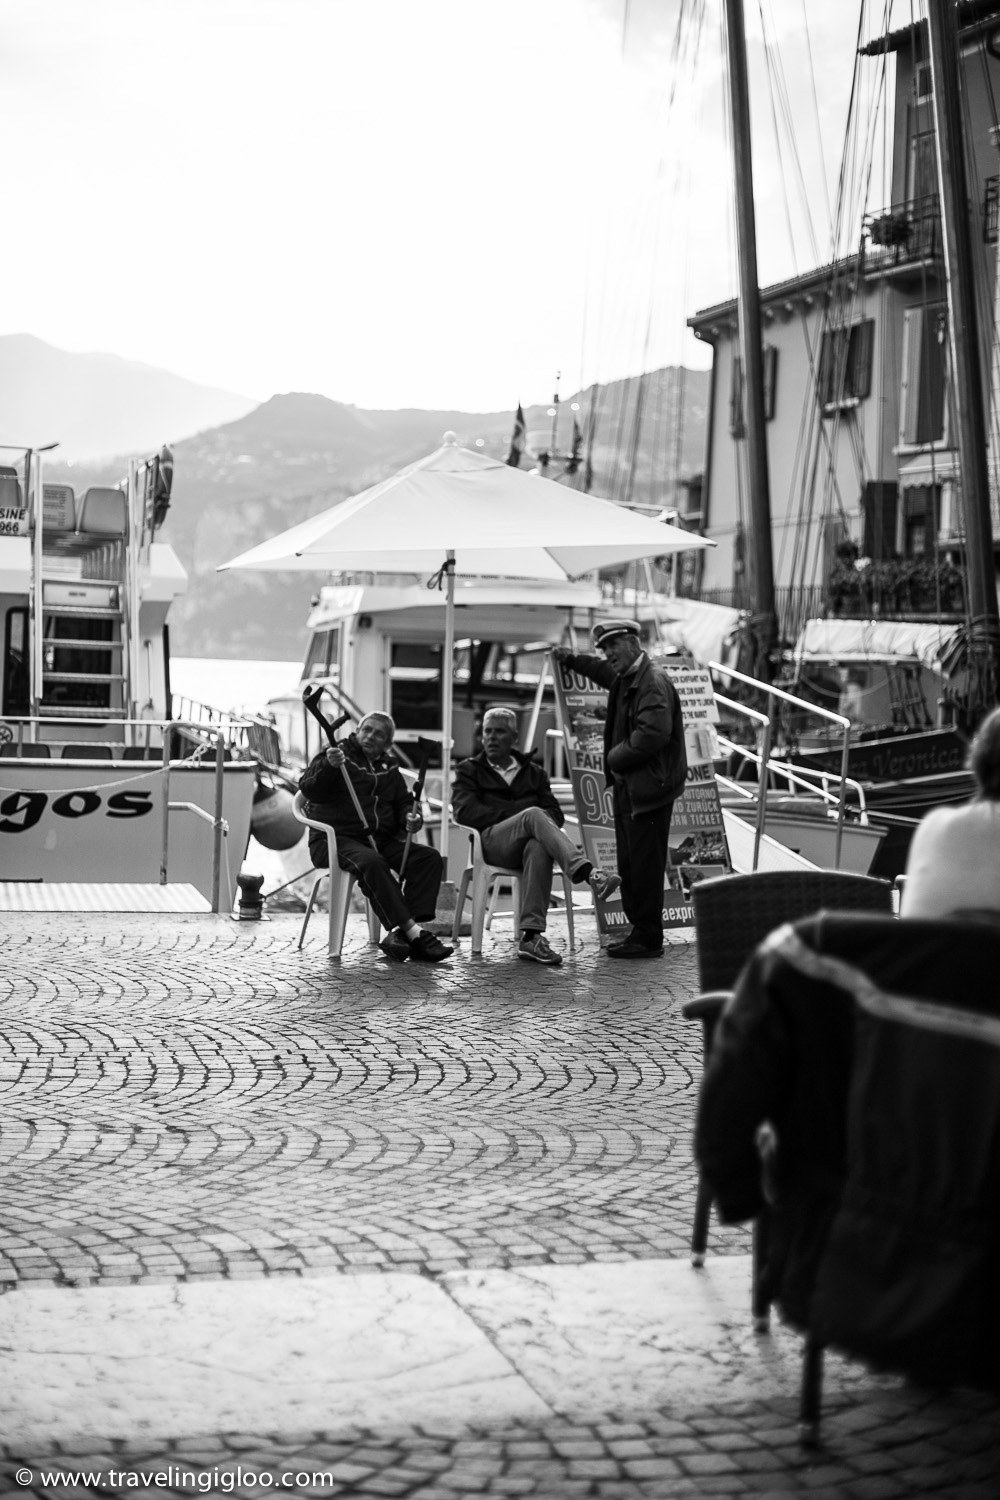 Venice-and-LakeGarda-20130520-293.jpg